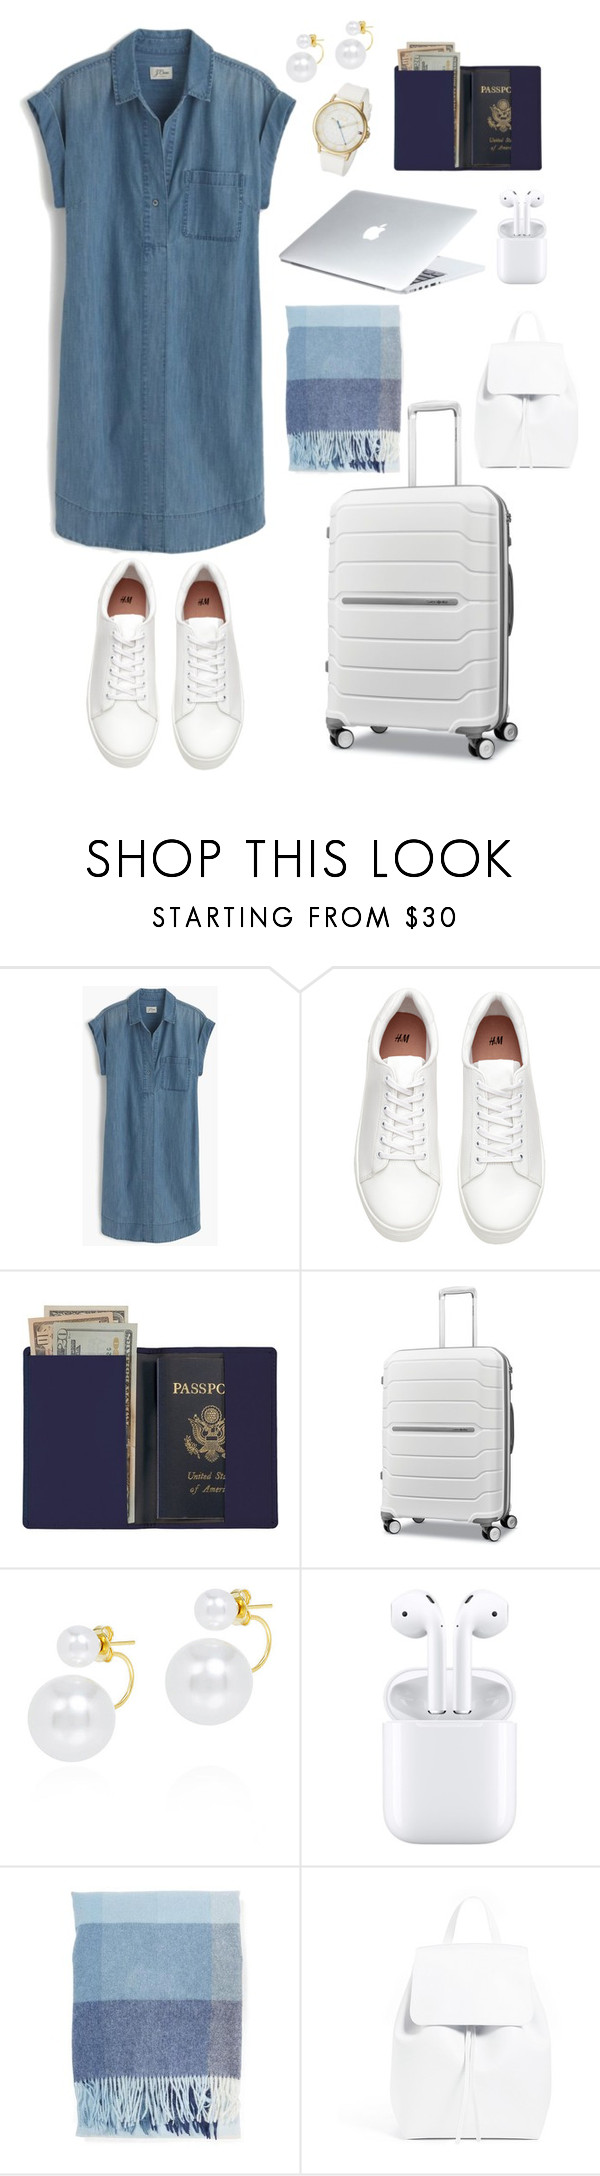 """""""airport fashion"""" by yoo6132 ❤ liked on Polyvore featuring J.Crew, H&M, Royce Leather, Samsonite, Fallon, Dyson and Tommy Hilfiger"""